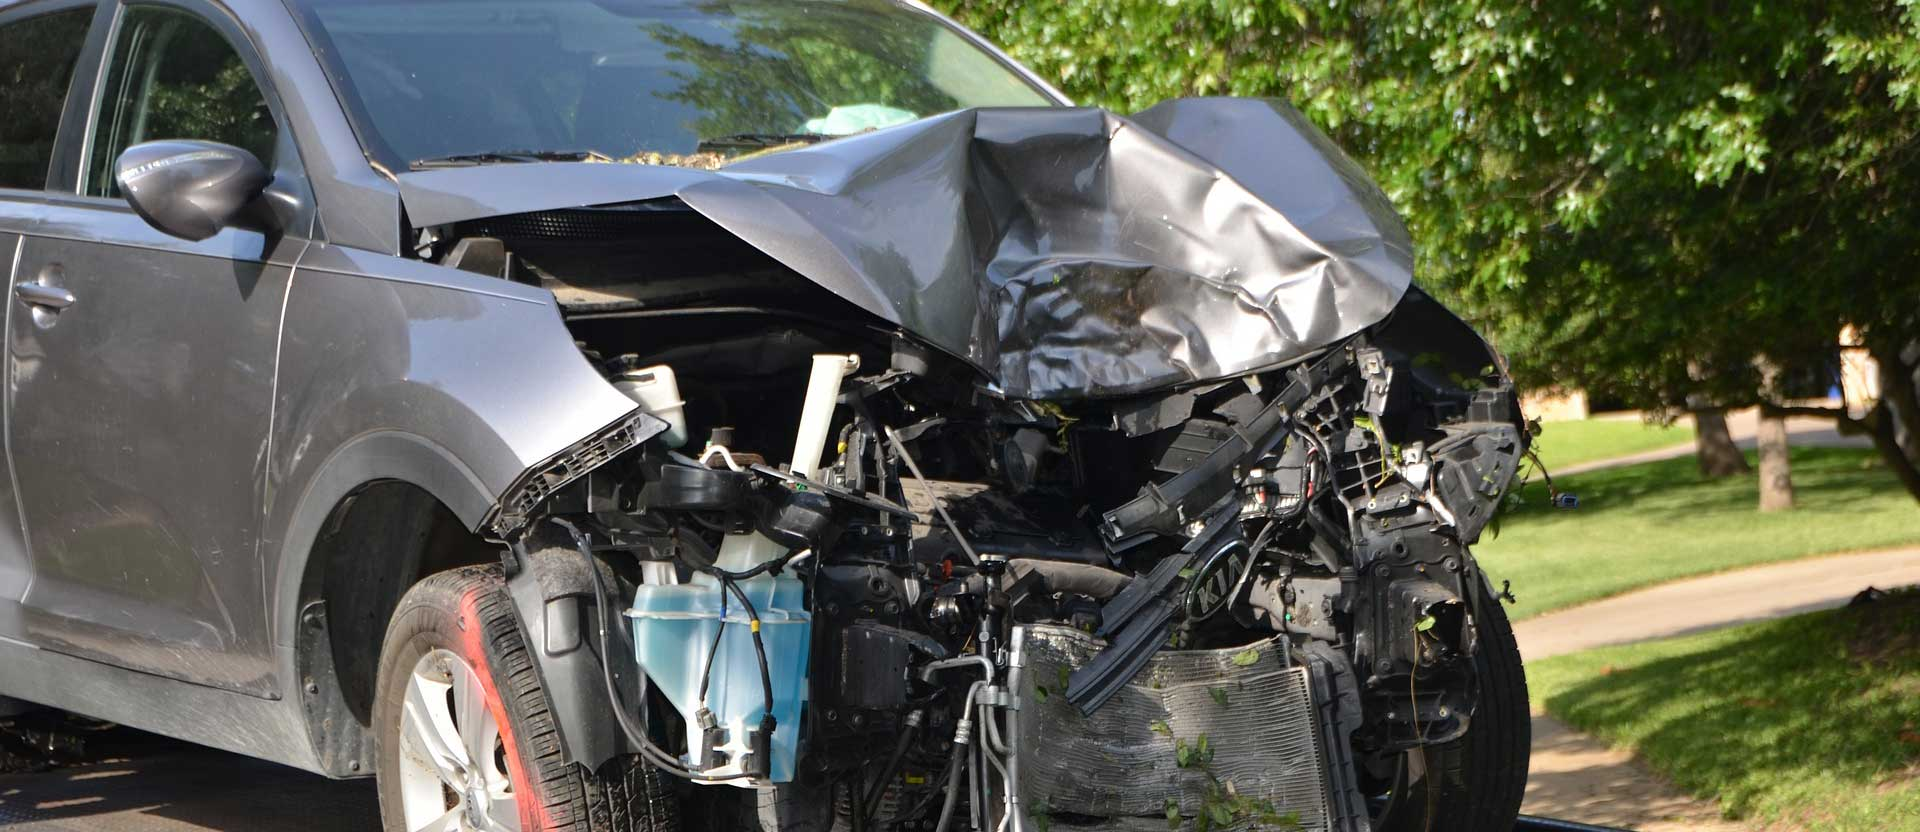 Personal Injury Lawyer for Car Crash Accidents